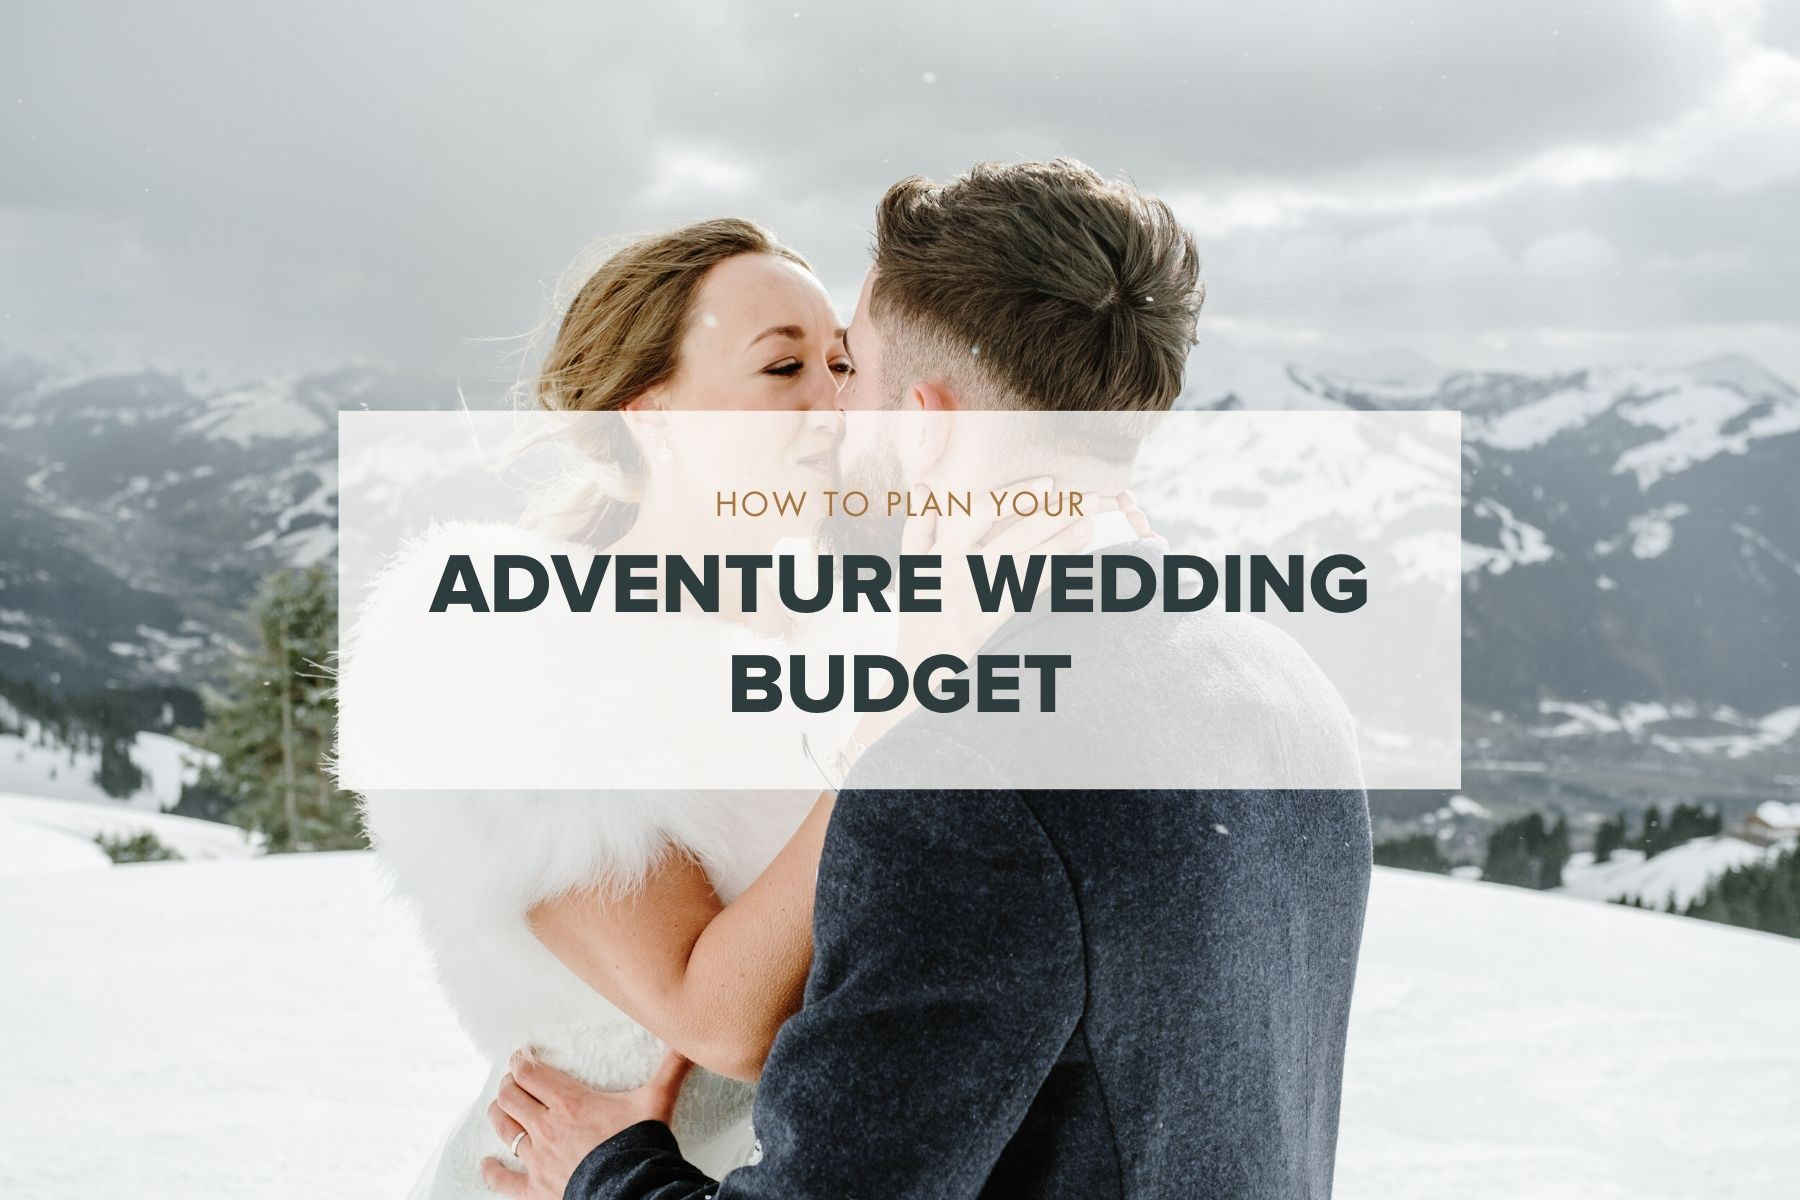 How to plan an adventure wedding budget